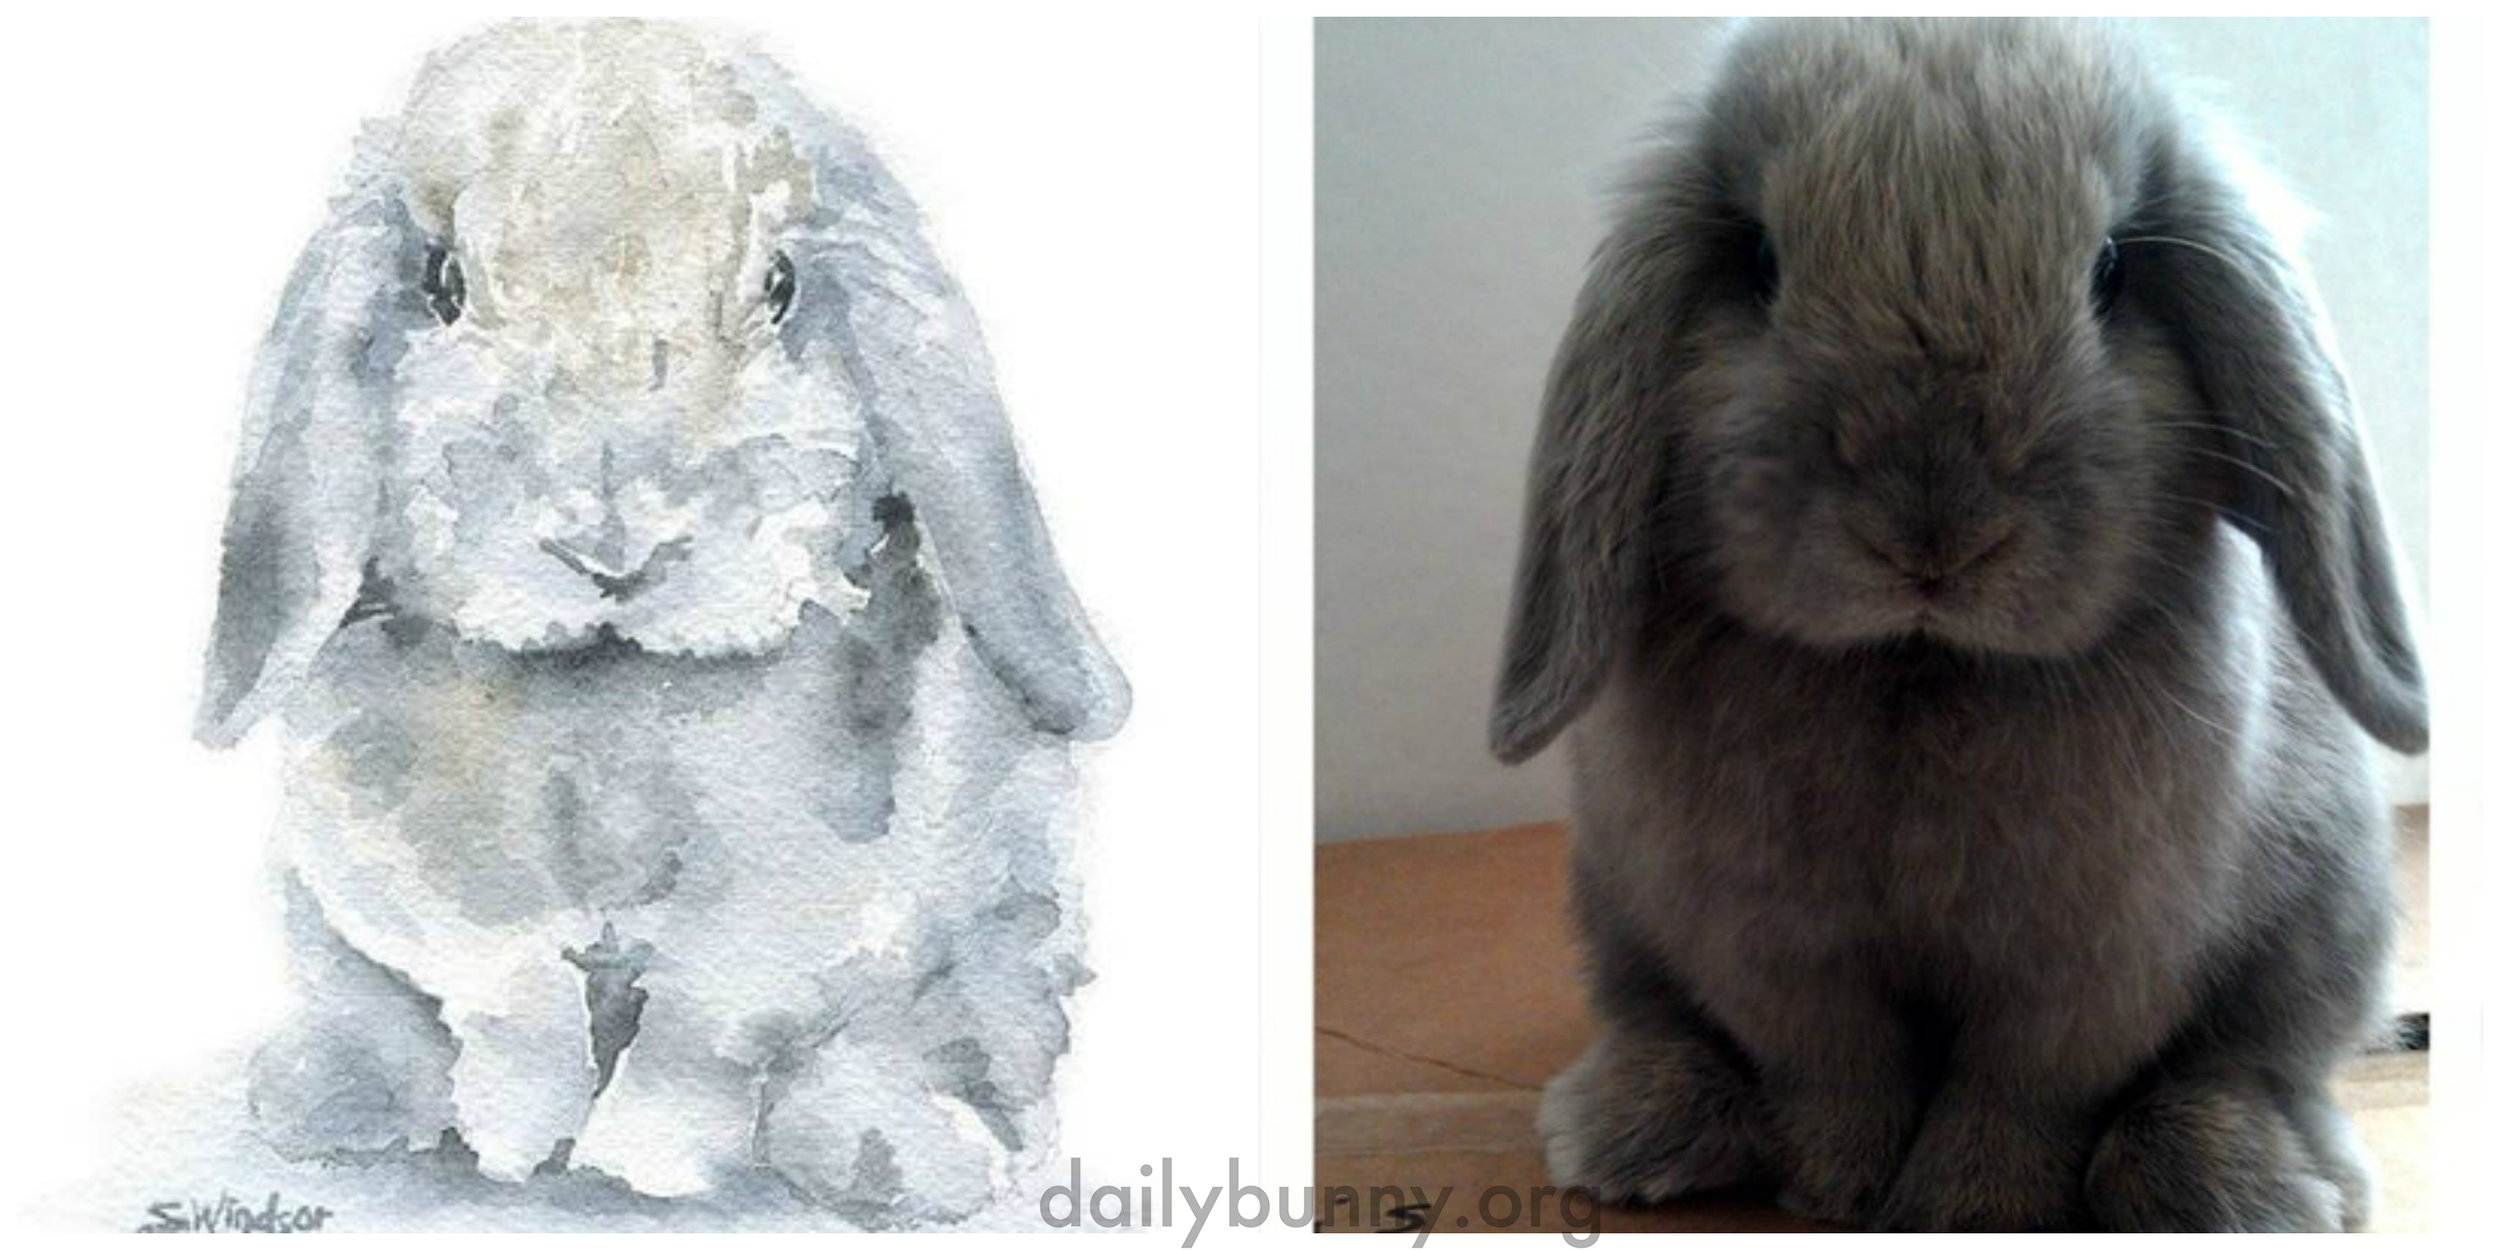 Bunny Has Commissioned a Portrait of Himself